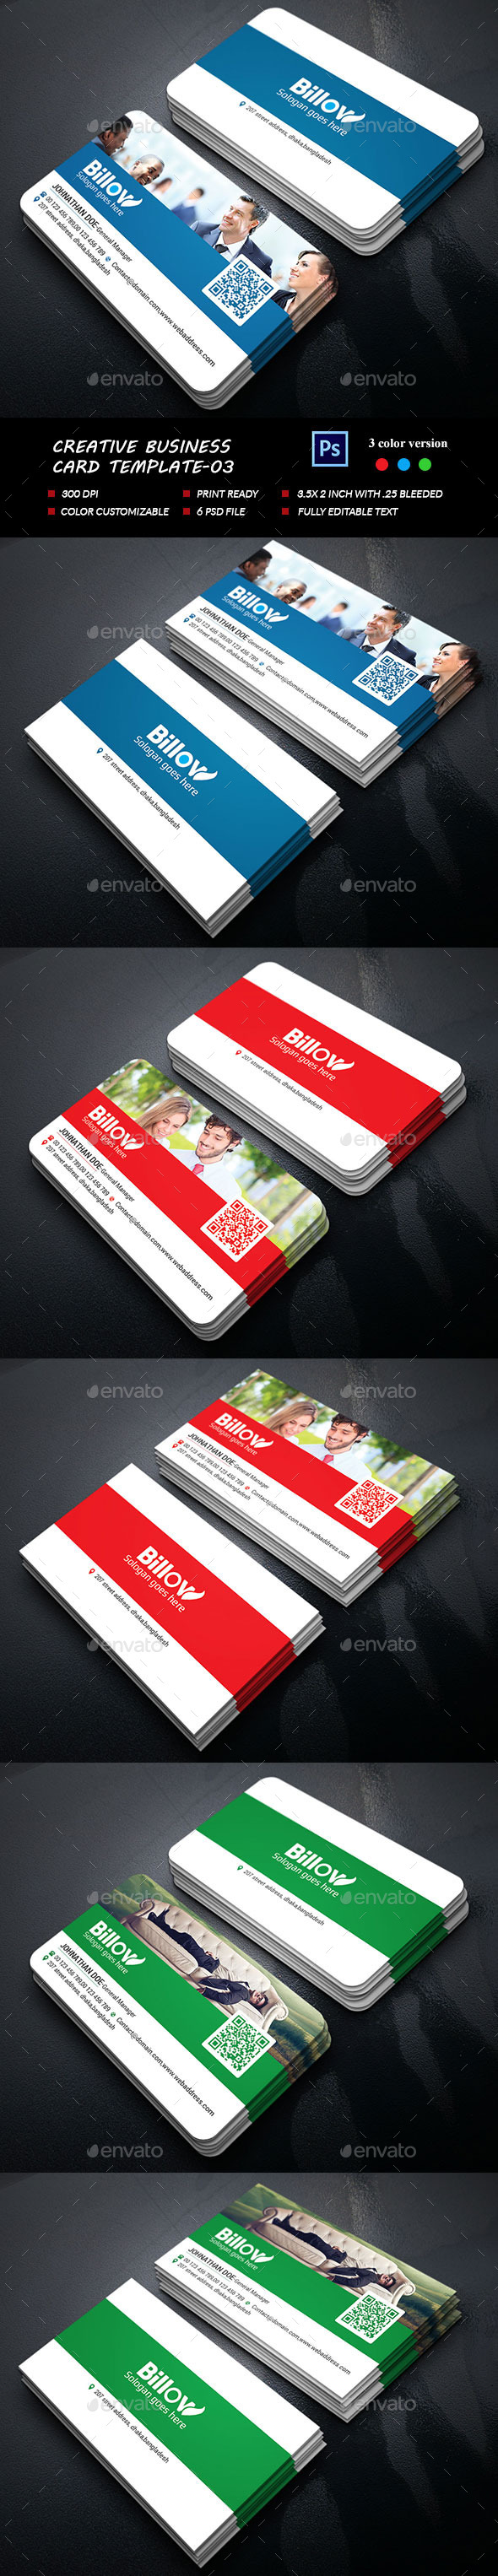 Creative Business Card-03 - Business Cards Print Templates